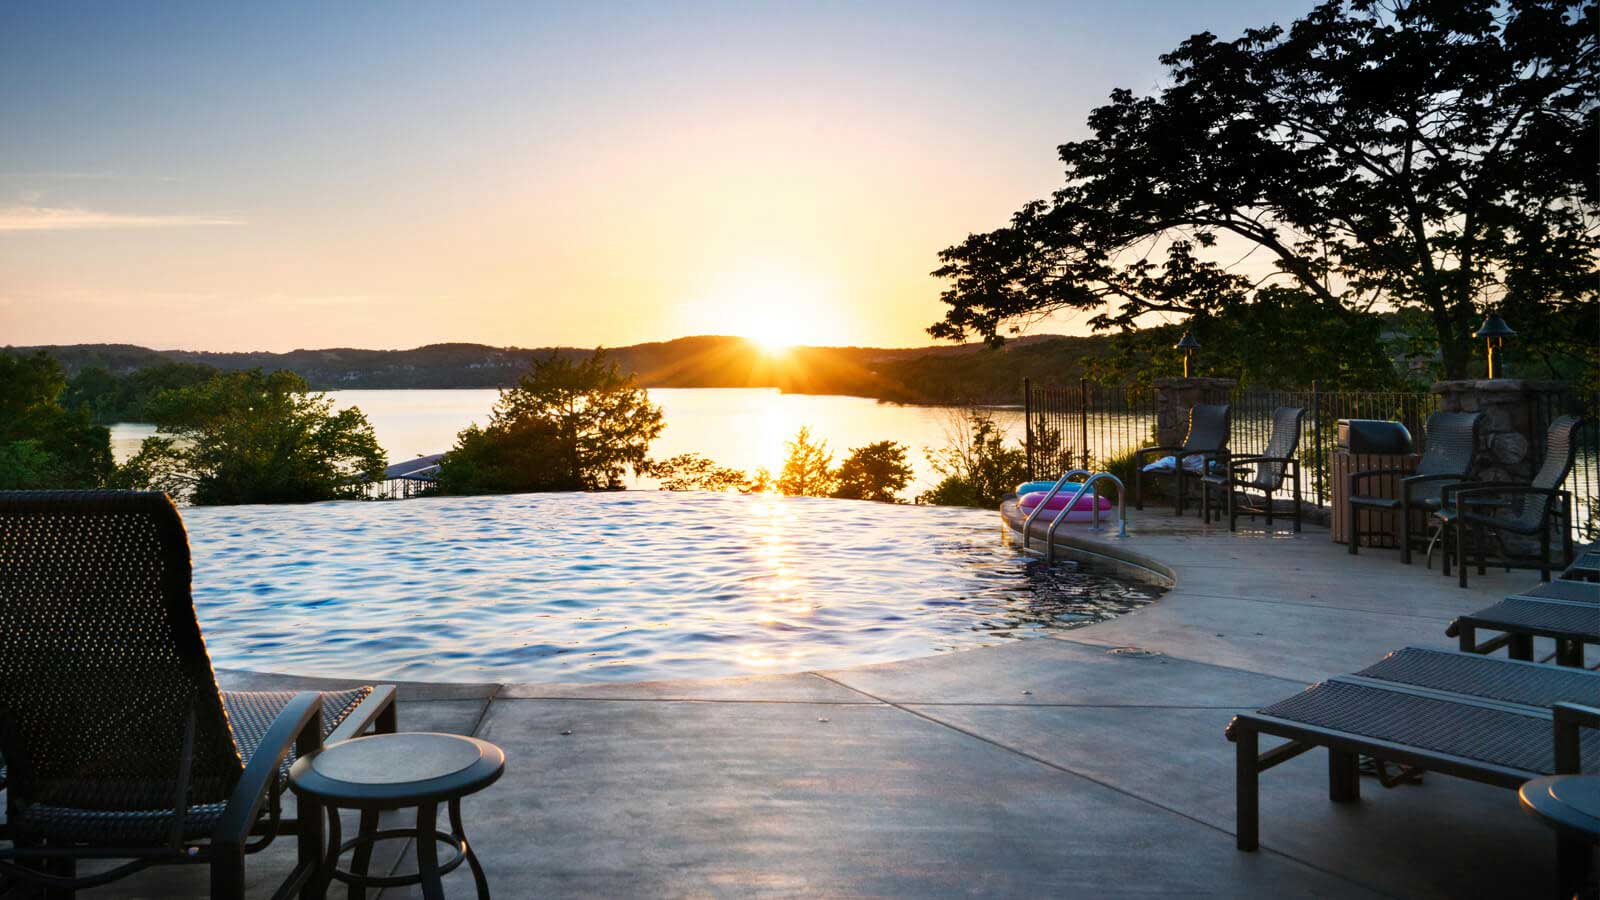 table rock lake places to stay